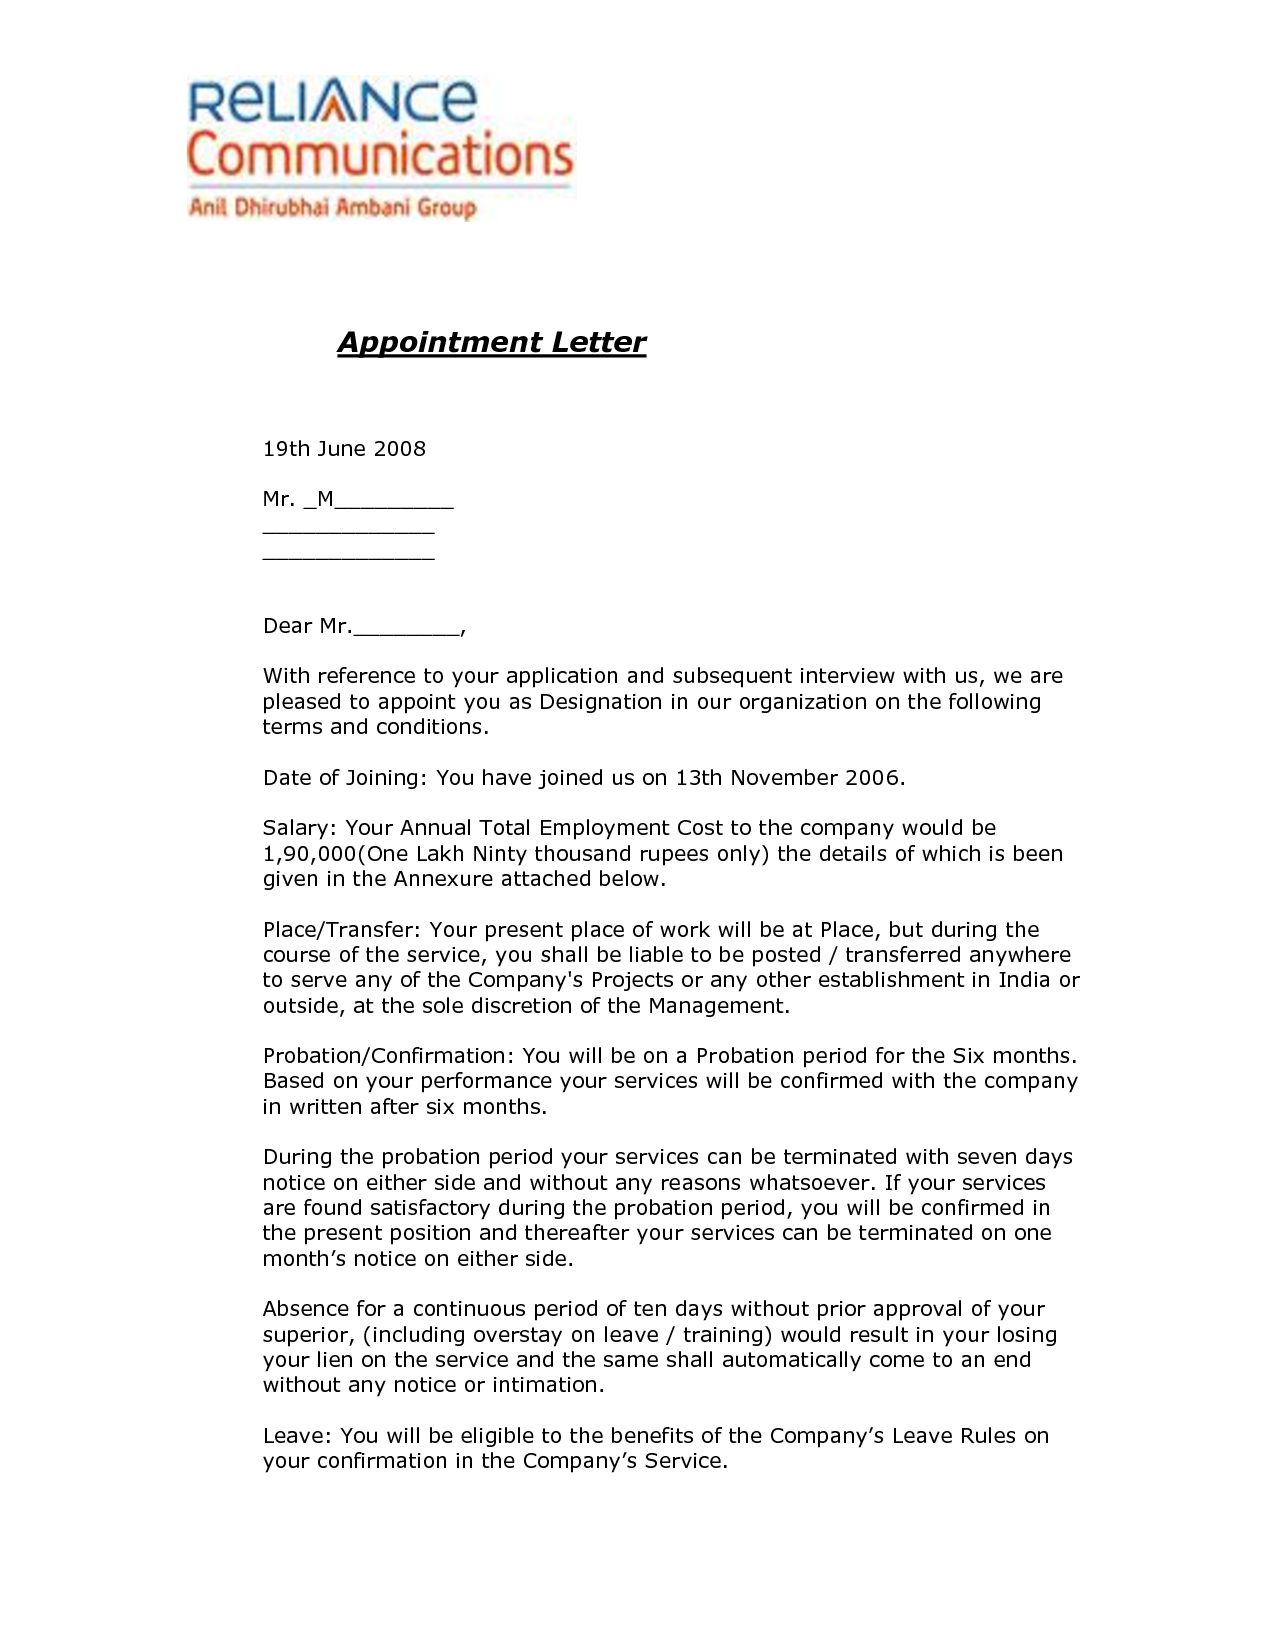 Joining Letter Format For Offer Letter Format Legal